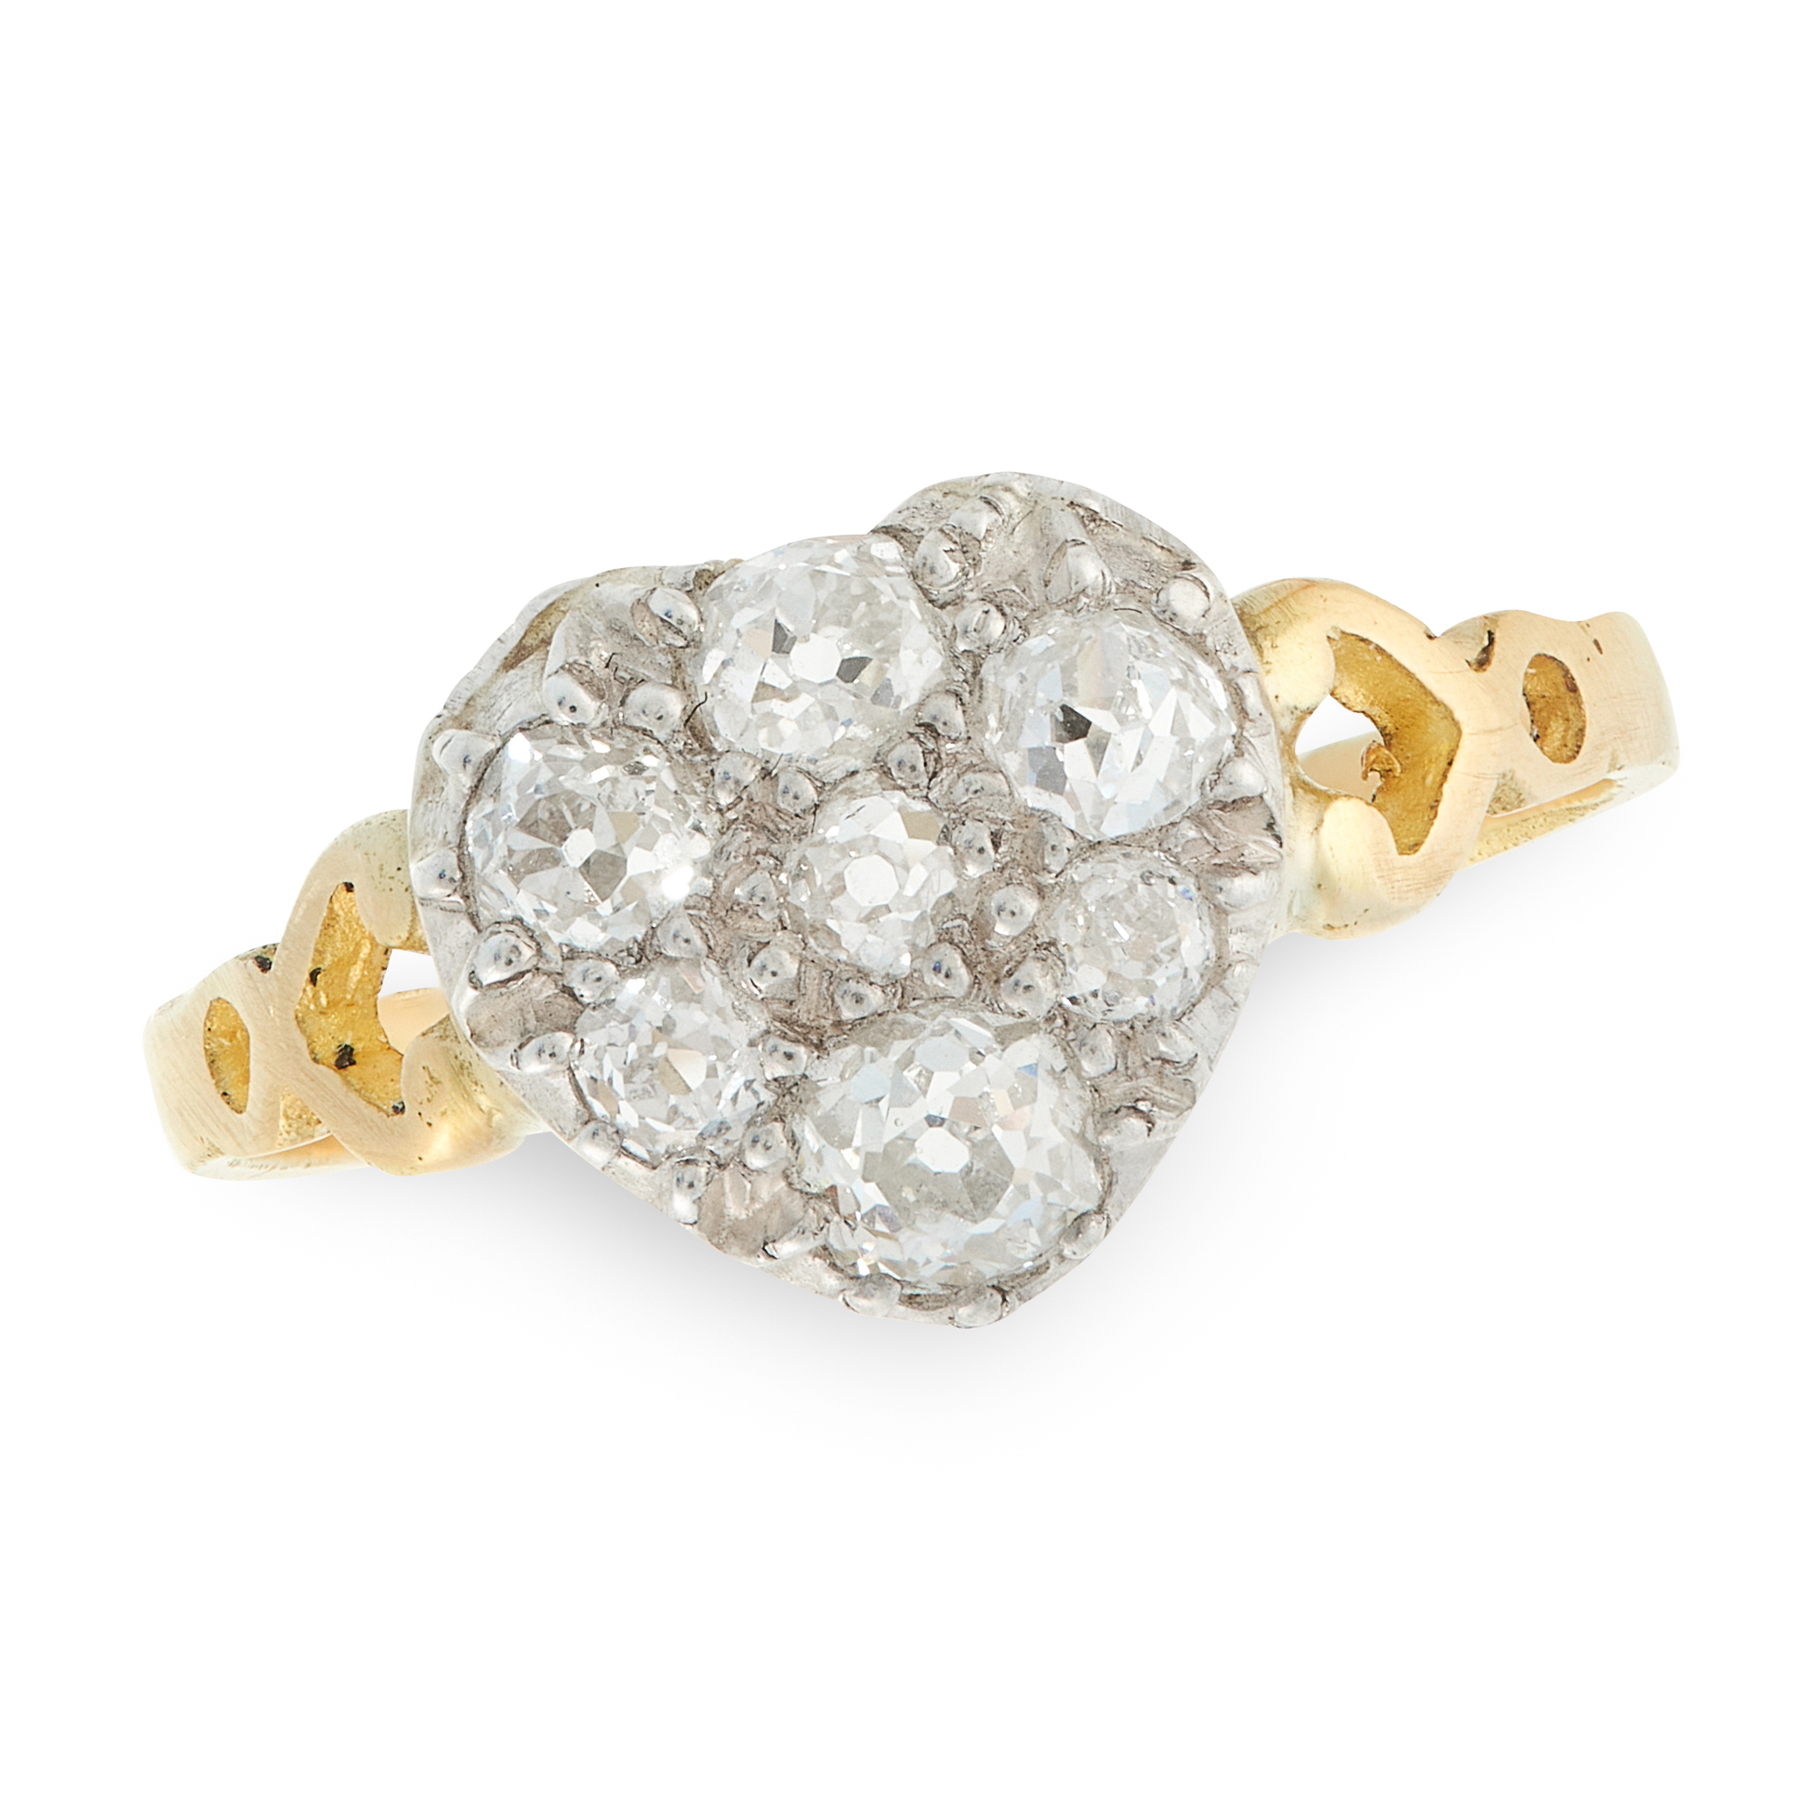 AN ANTIQUE DIAMOND DRESS RING in high carat yellow gold and silver, the face in the form of a heart,